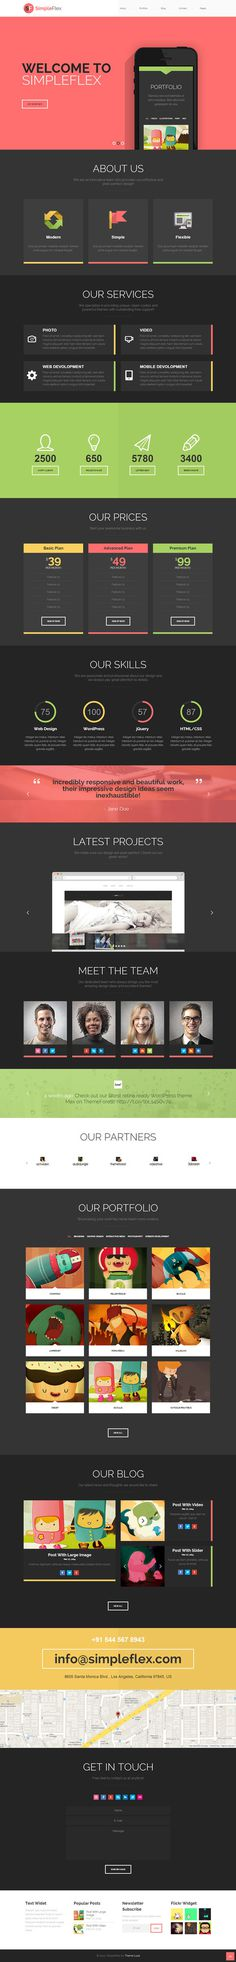 Flat One Page WordPress Theme #layout #colors #dark #web design #concept #flat #one page